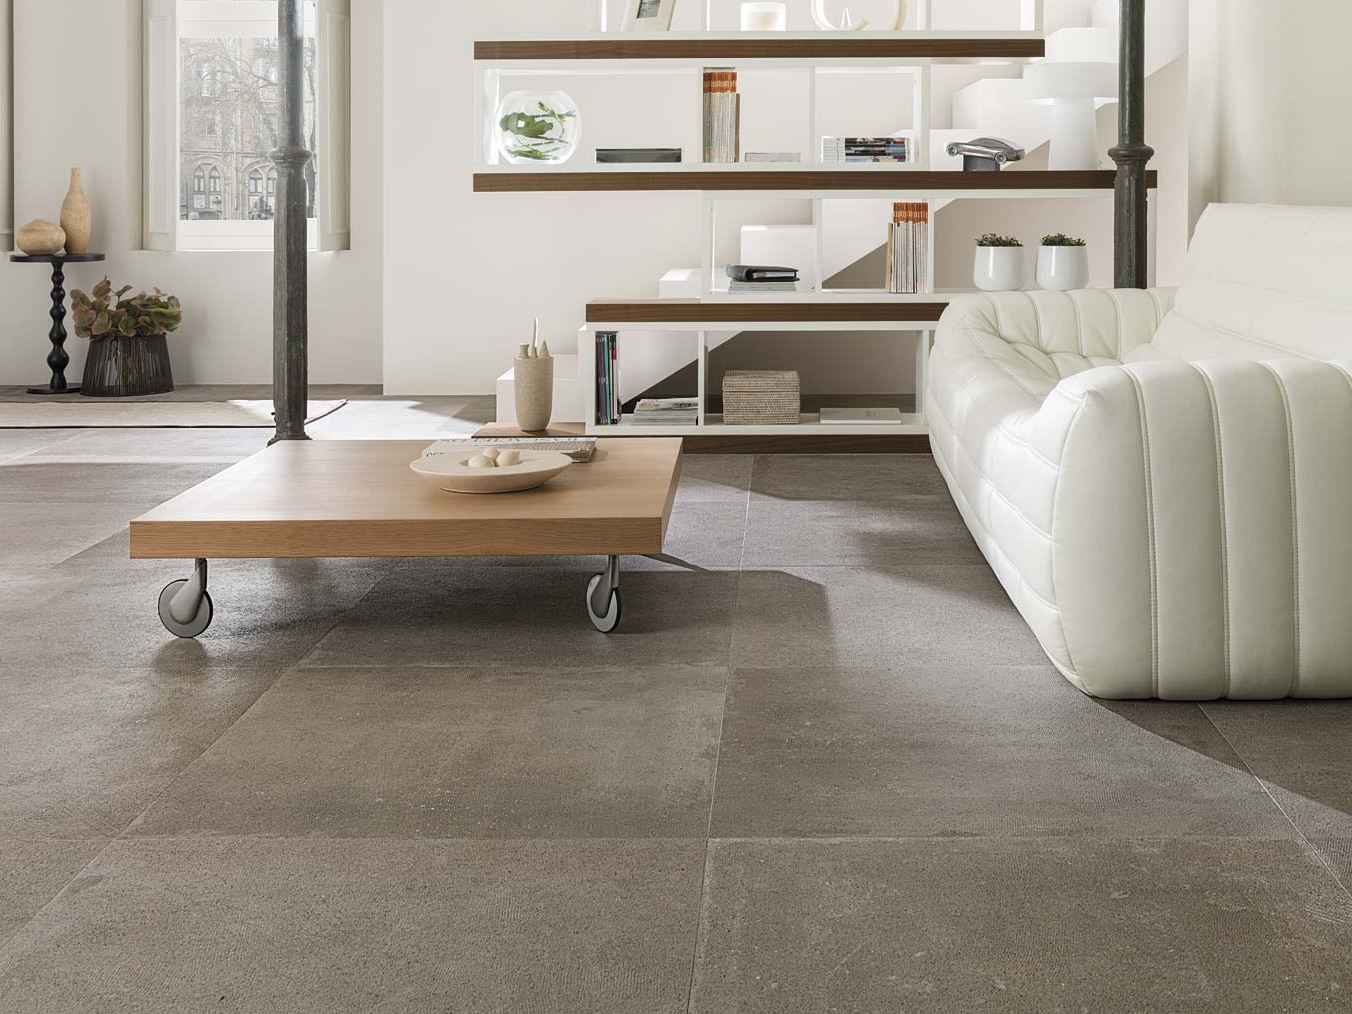 Porcelanosa Floor Tiles Finishesporcelanosa Wallfloor Tiles  Archiproducts